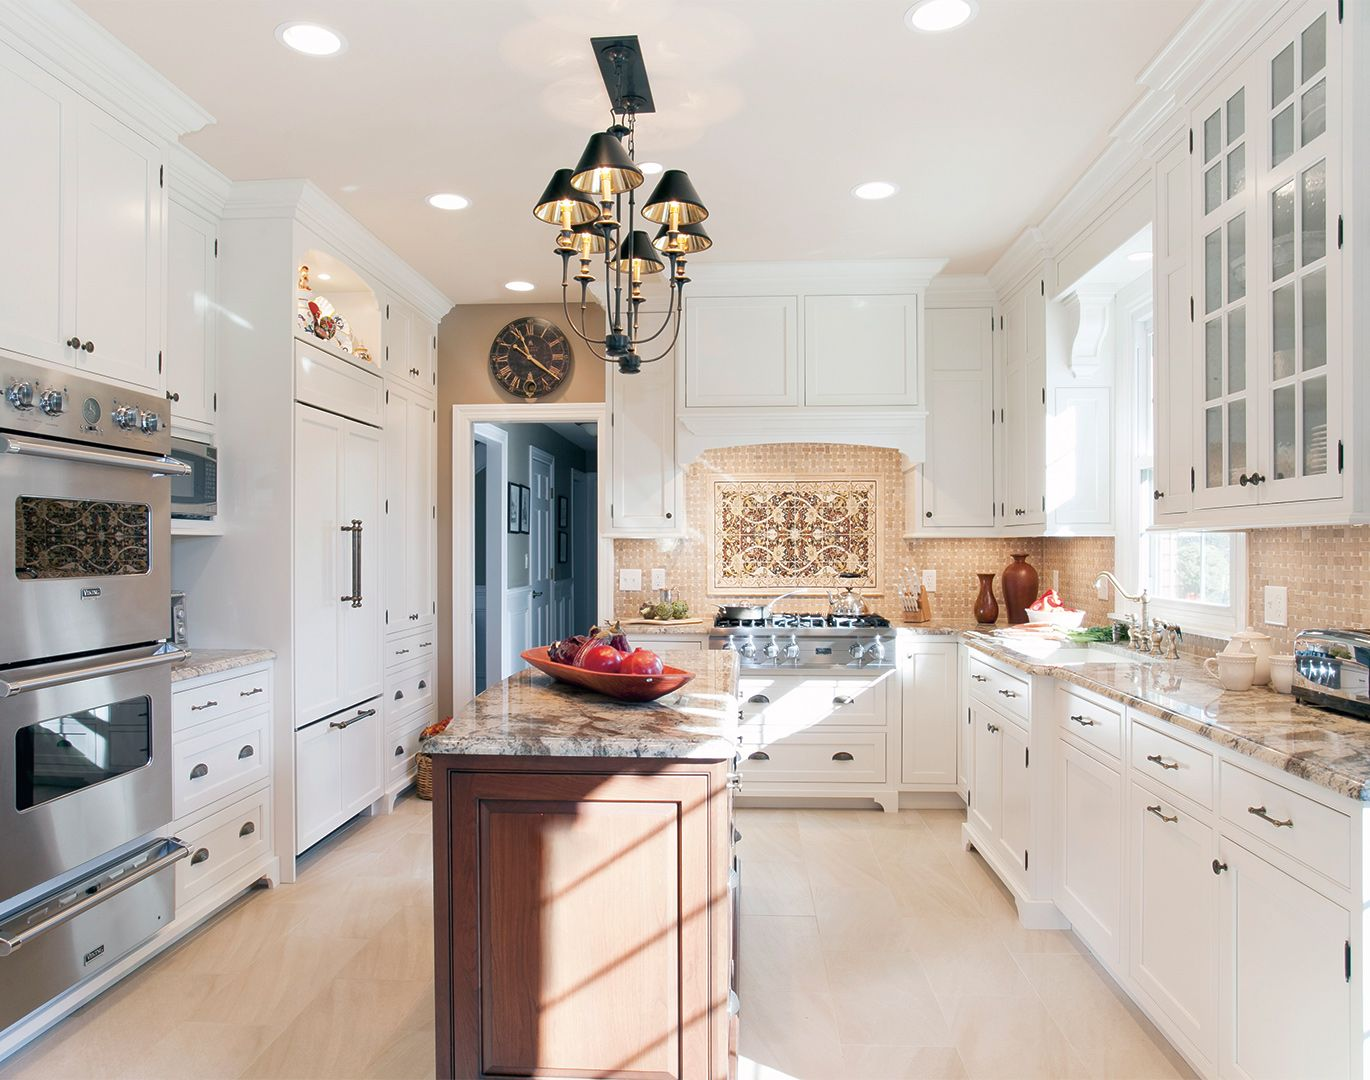 Plainfancycabinetry Kitchen And Bath Design Cottage Kitchen Cabinets Cottage Style Kitchen